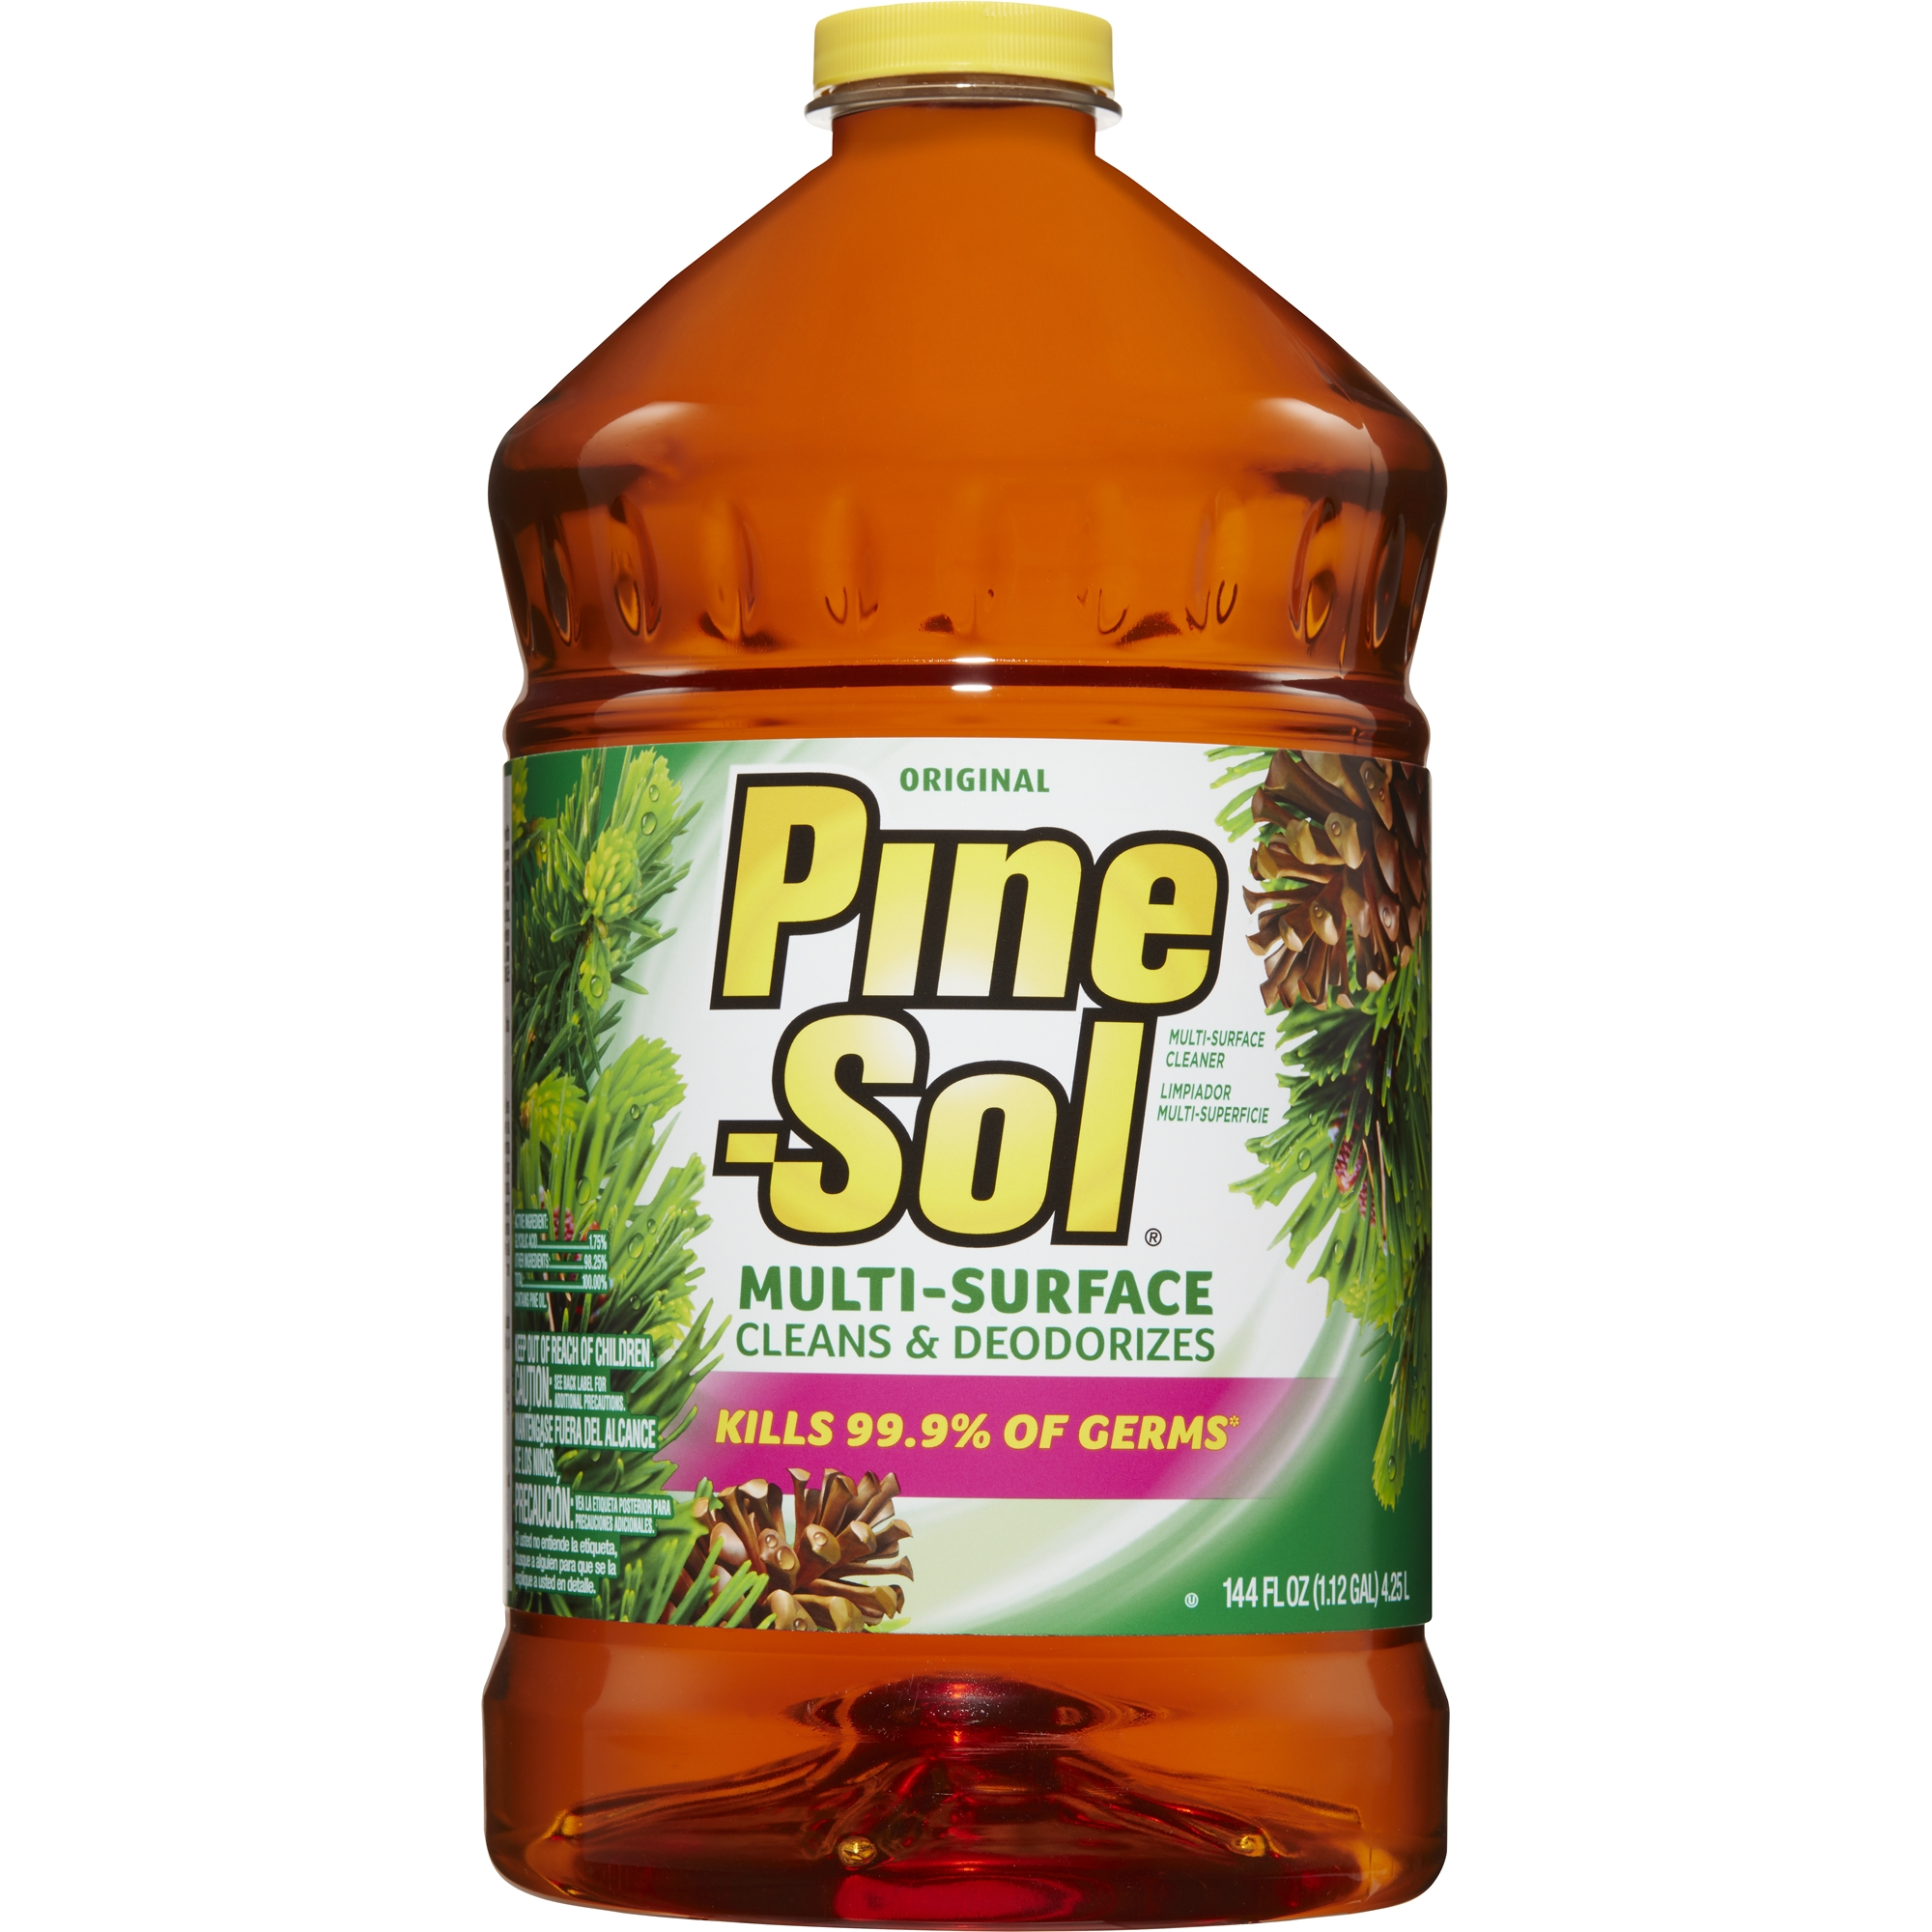 Pine-Sol Multi-Surface Cleaner, Original, 144 oz Bottle